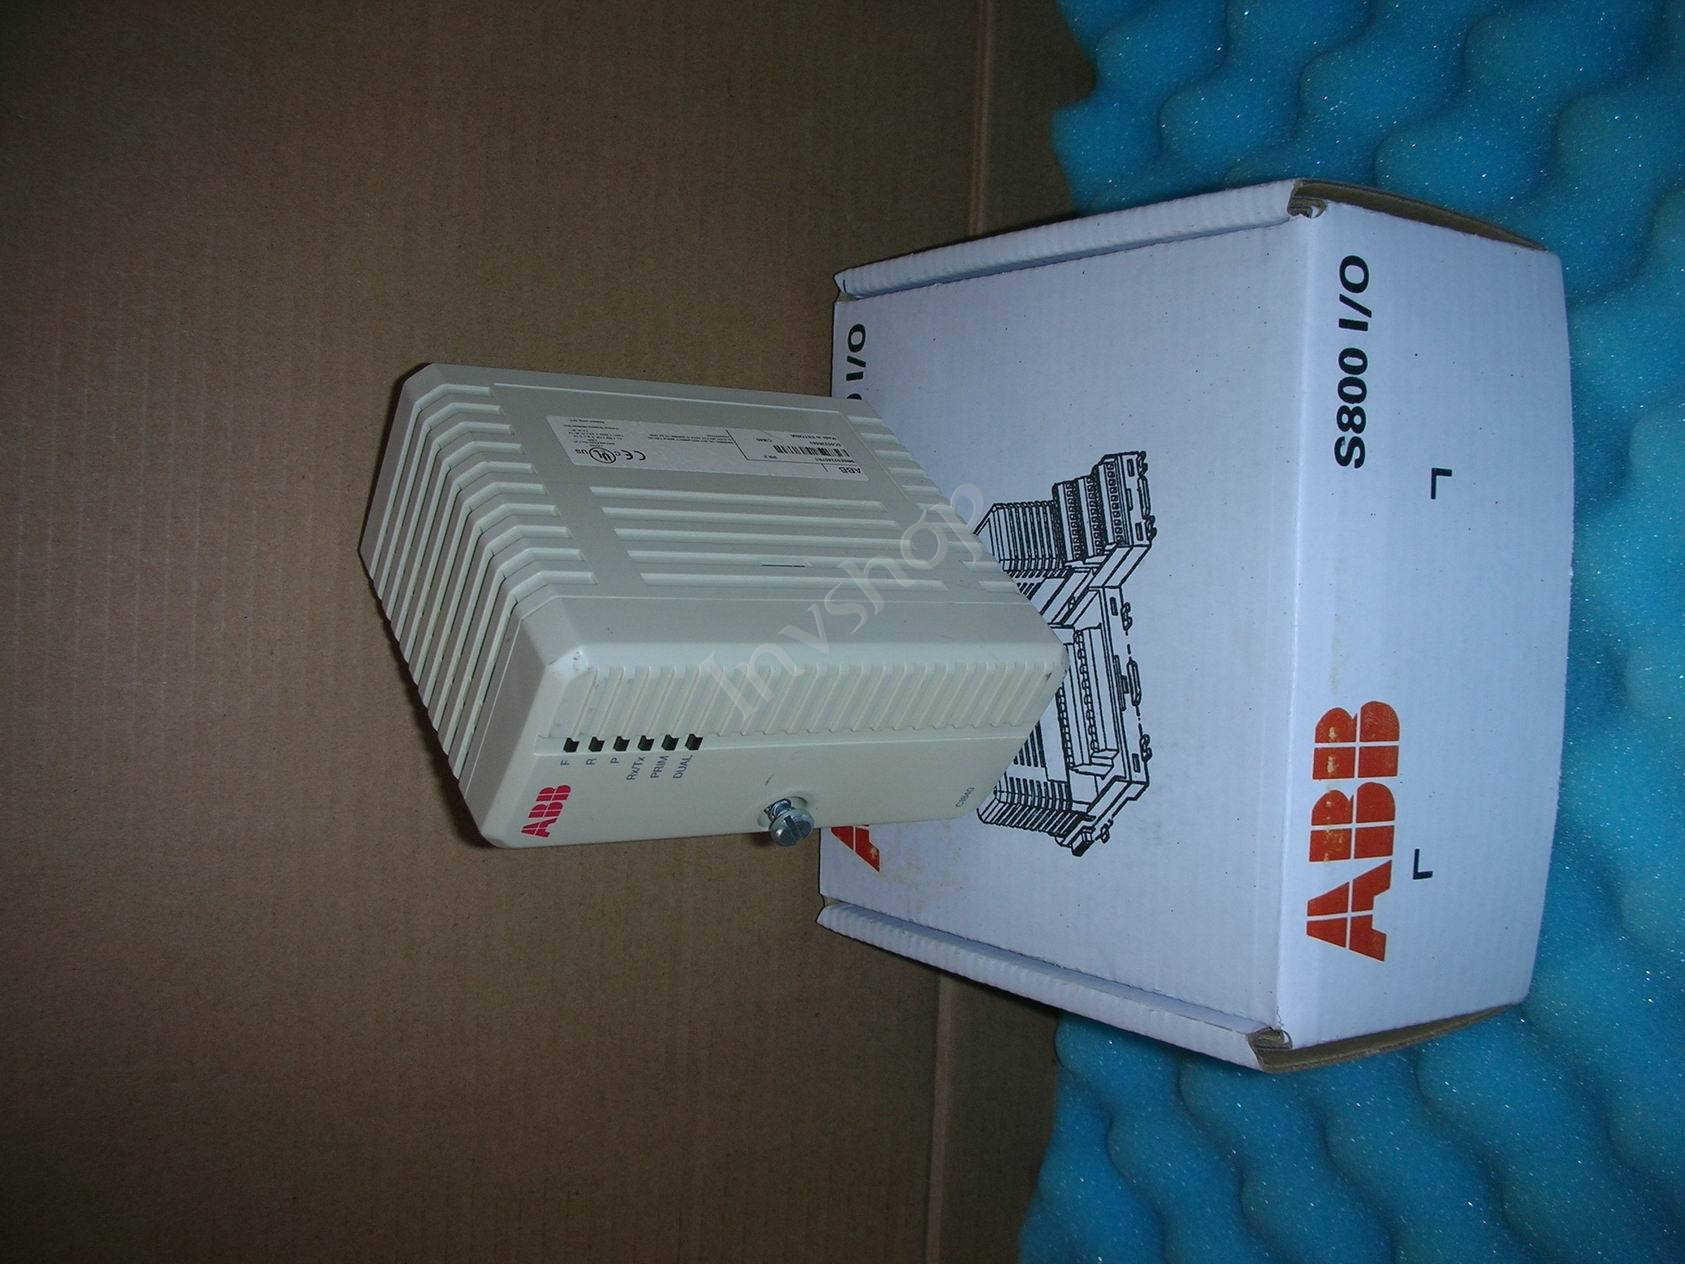 ABB 3BSE028926R1 USED DP840 PLC